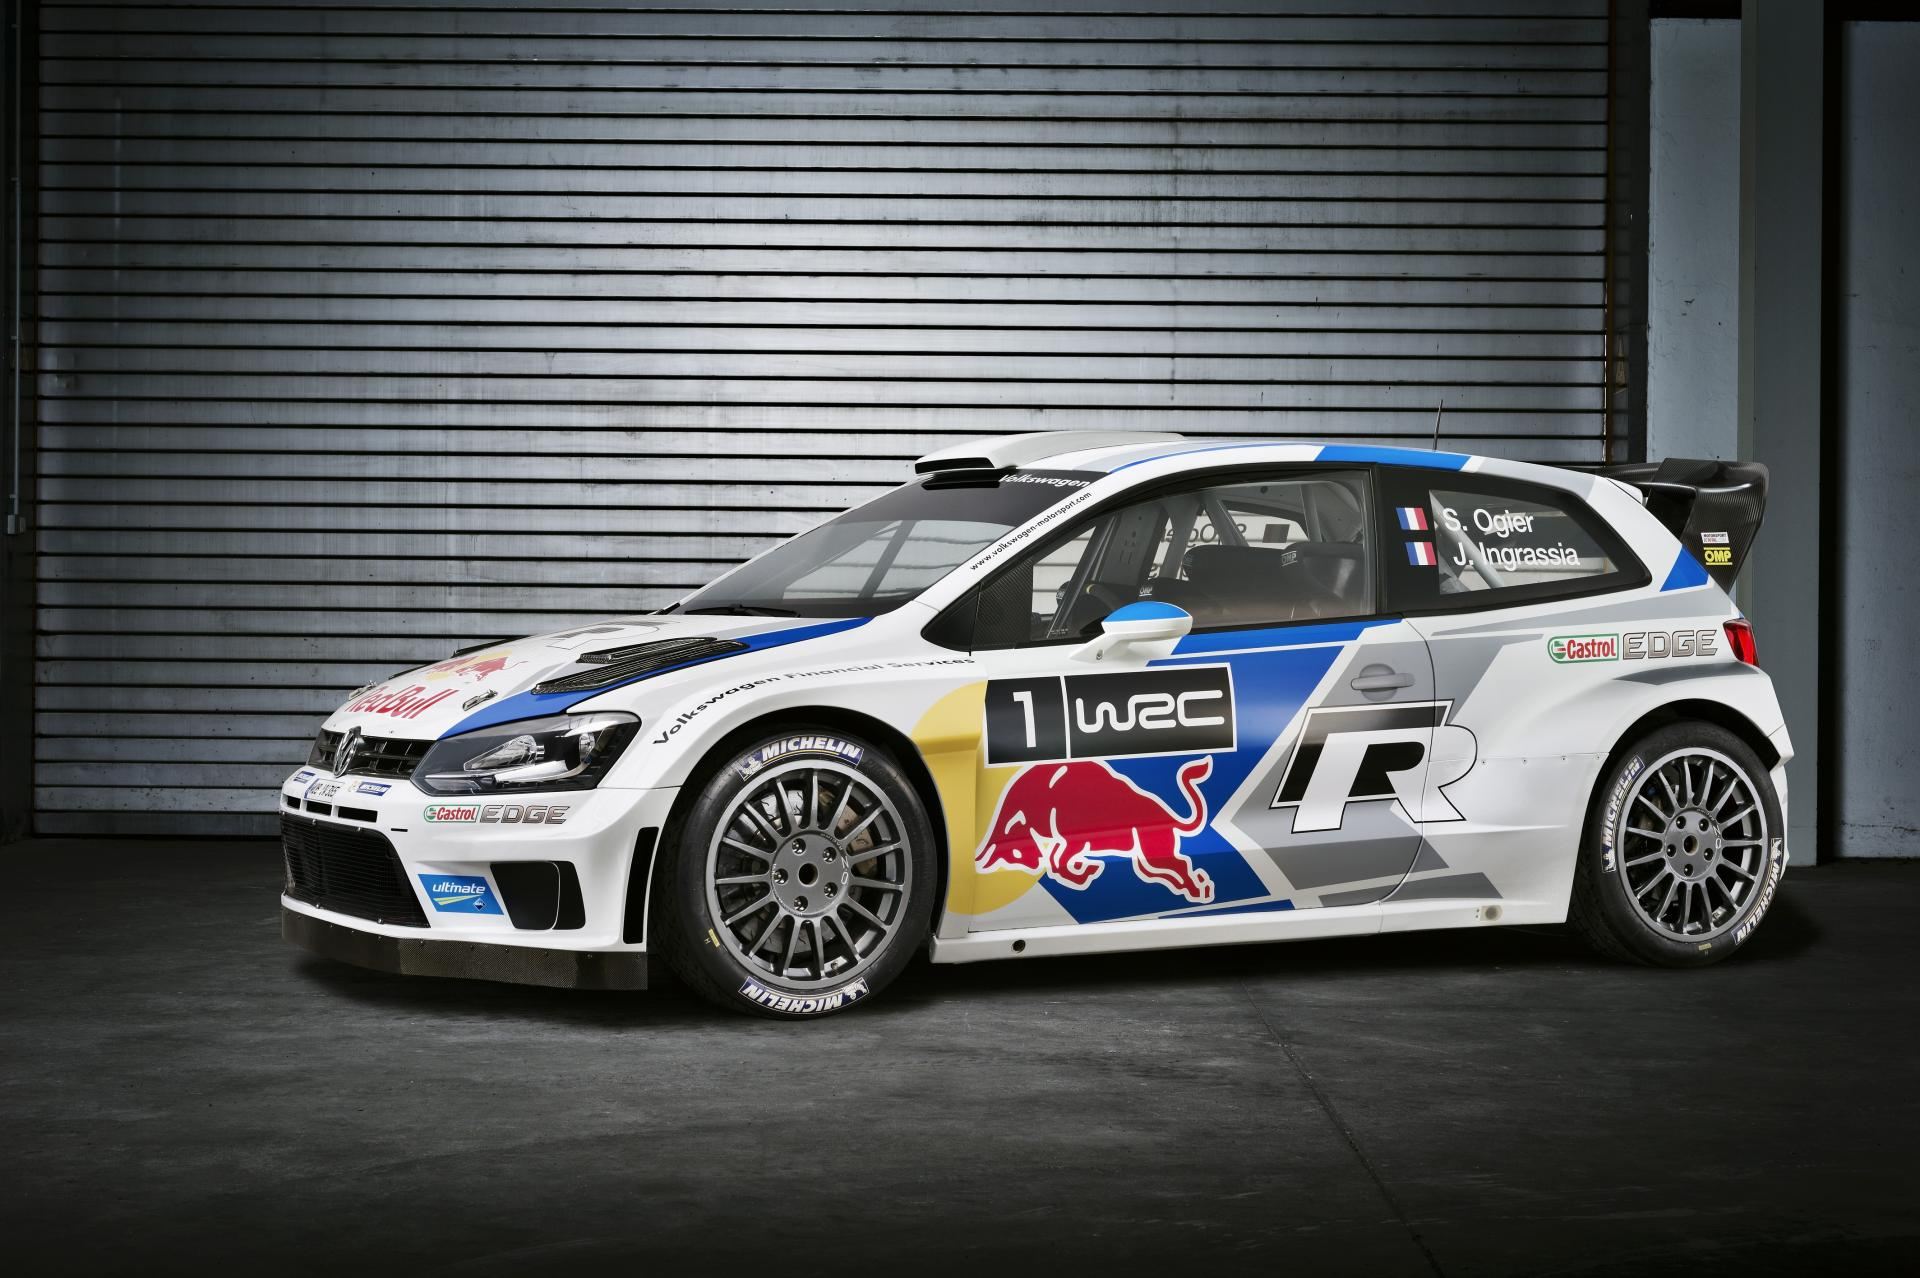 2014 volkswagen polo r wrc news and information research. Black Bedroom Furniture Sets. Home Design Ideas